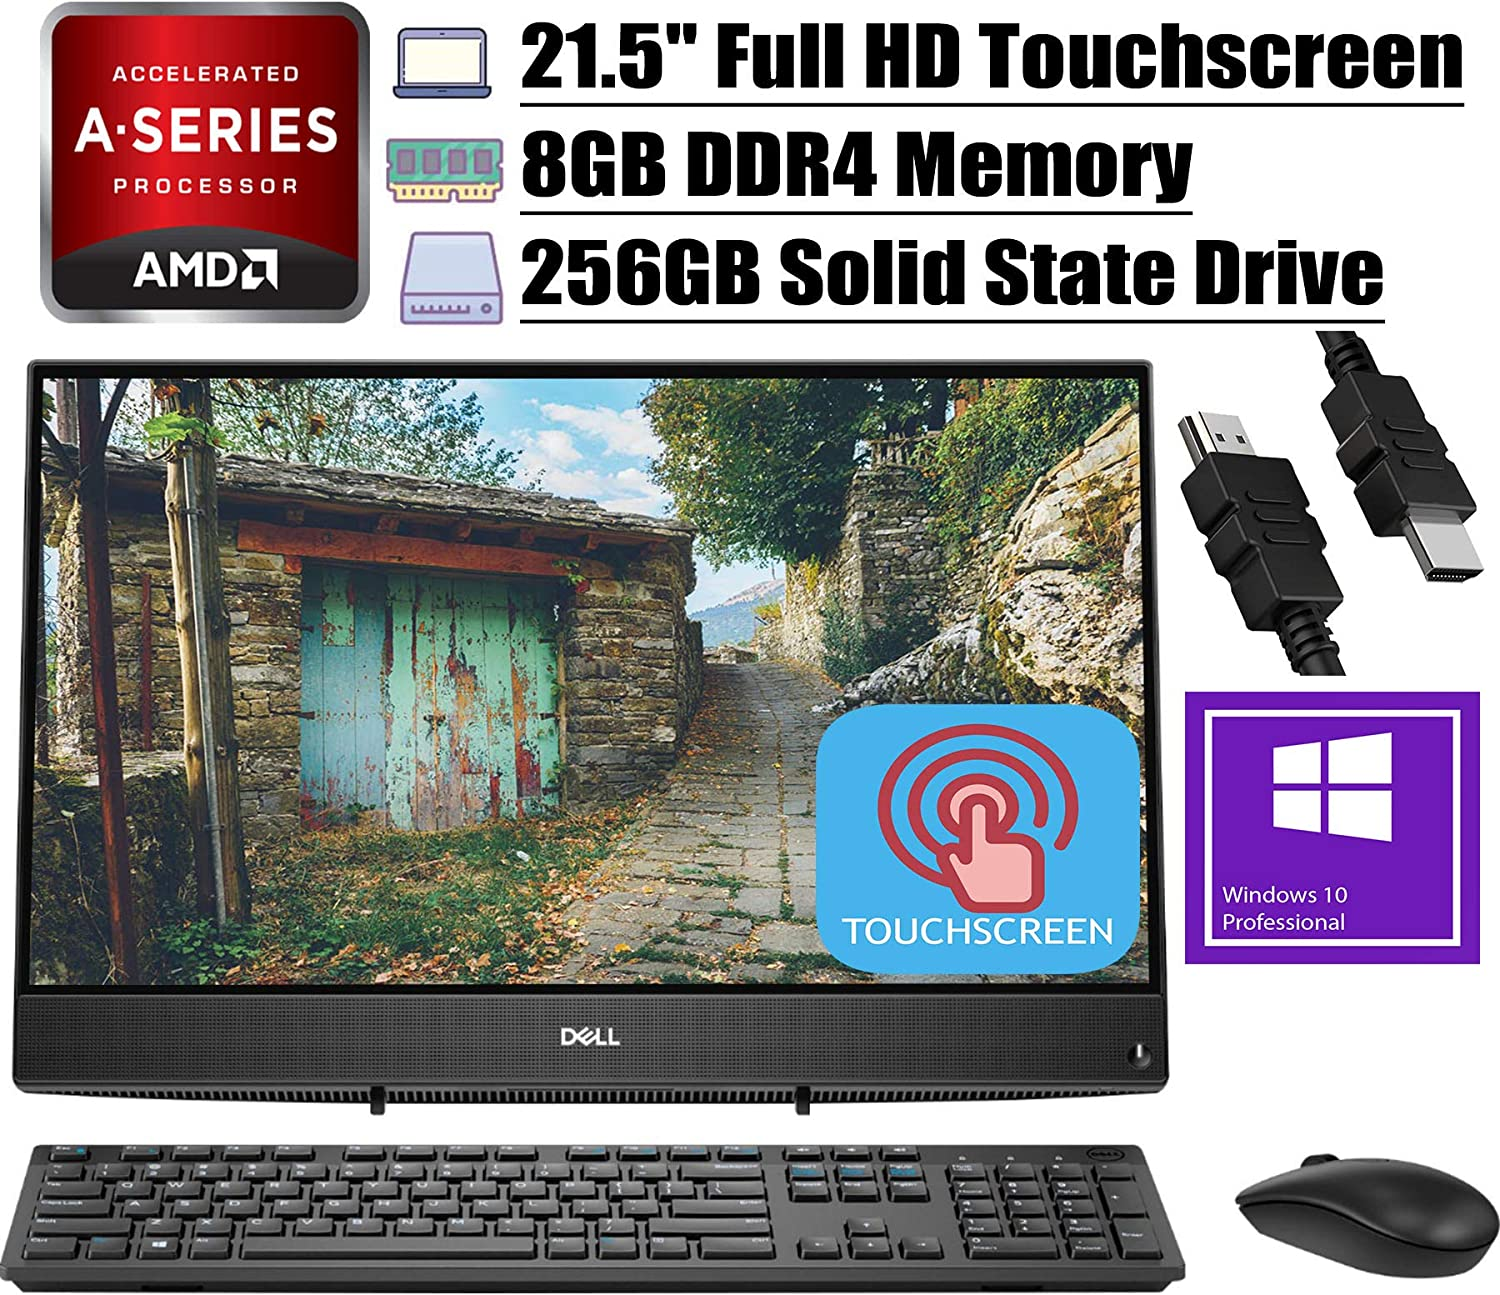 "2020 Latest Dell Inspiron 22 3000 All in one Desktop Computer AMD Core A6-9225 21.5"" FHD Touchscreen 8GB DDR4 256GB SSD Keyboard Mouse AMD Radeon Graphics HDMI WiFi Win 10 Pro + iCarp HDMI Cable"